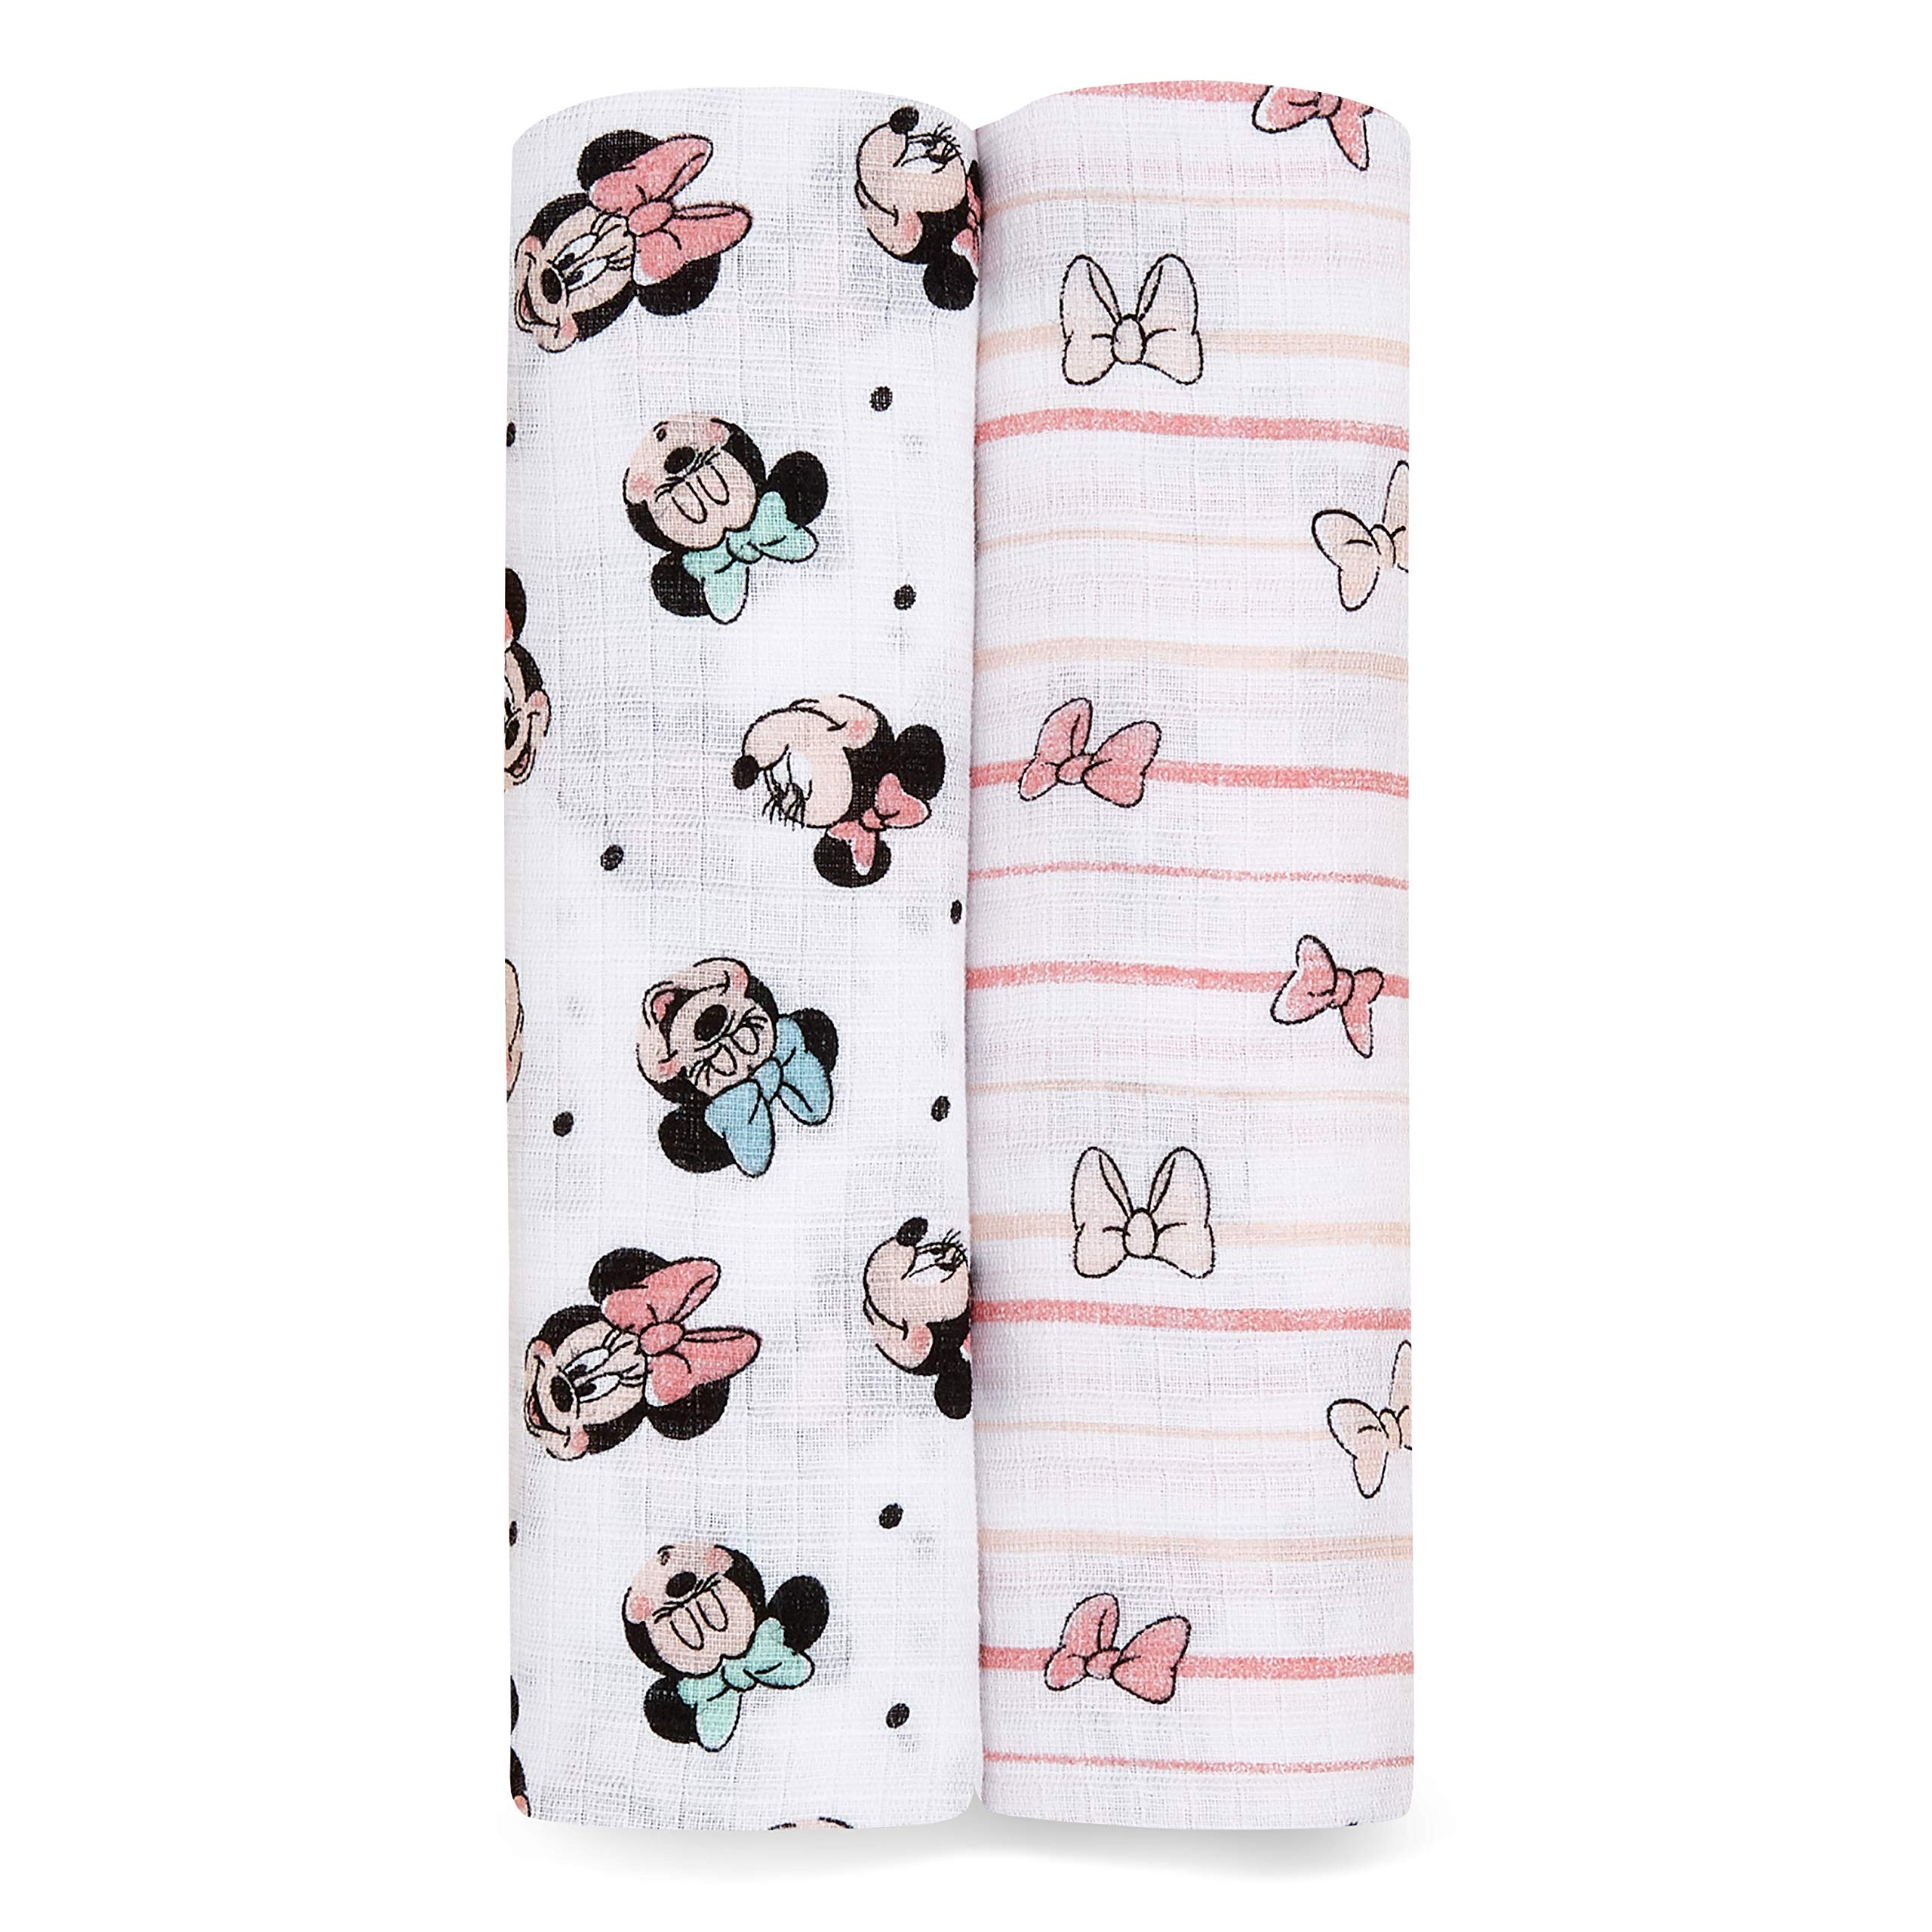 Aden by aden + anais Swaddle Blanket, Muslin Blankets for Girls & Boys, Baby Receiving Swaddles, Ideal Newborn Gifts, Unisex Infant Shower Items,Wearable Swaddling Set, 2 Pack, Minnie Rainbows